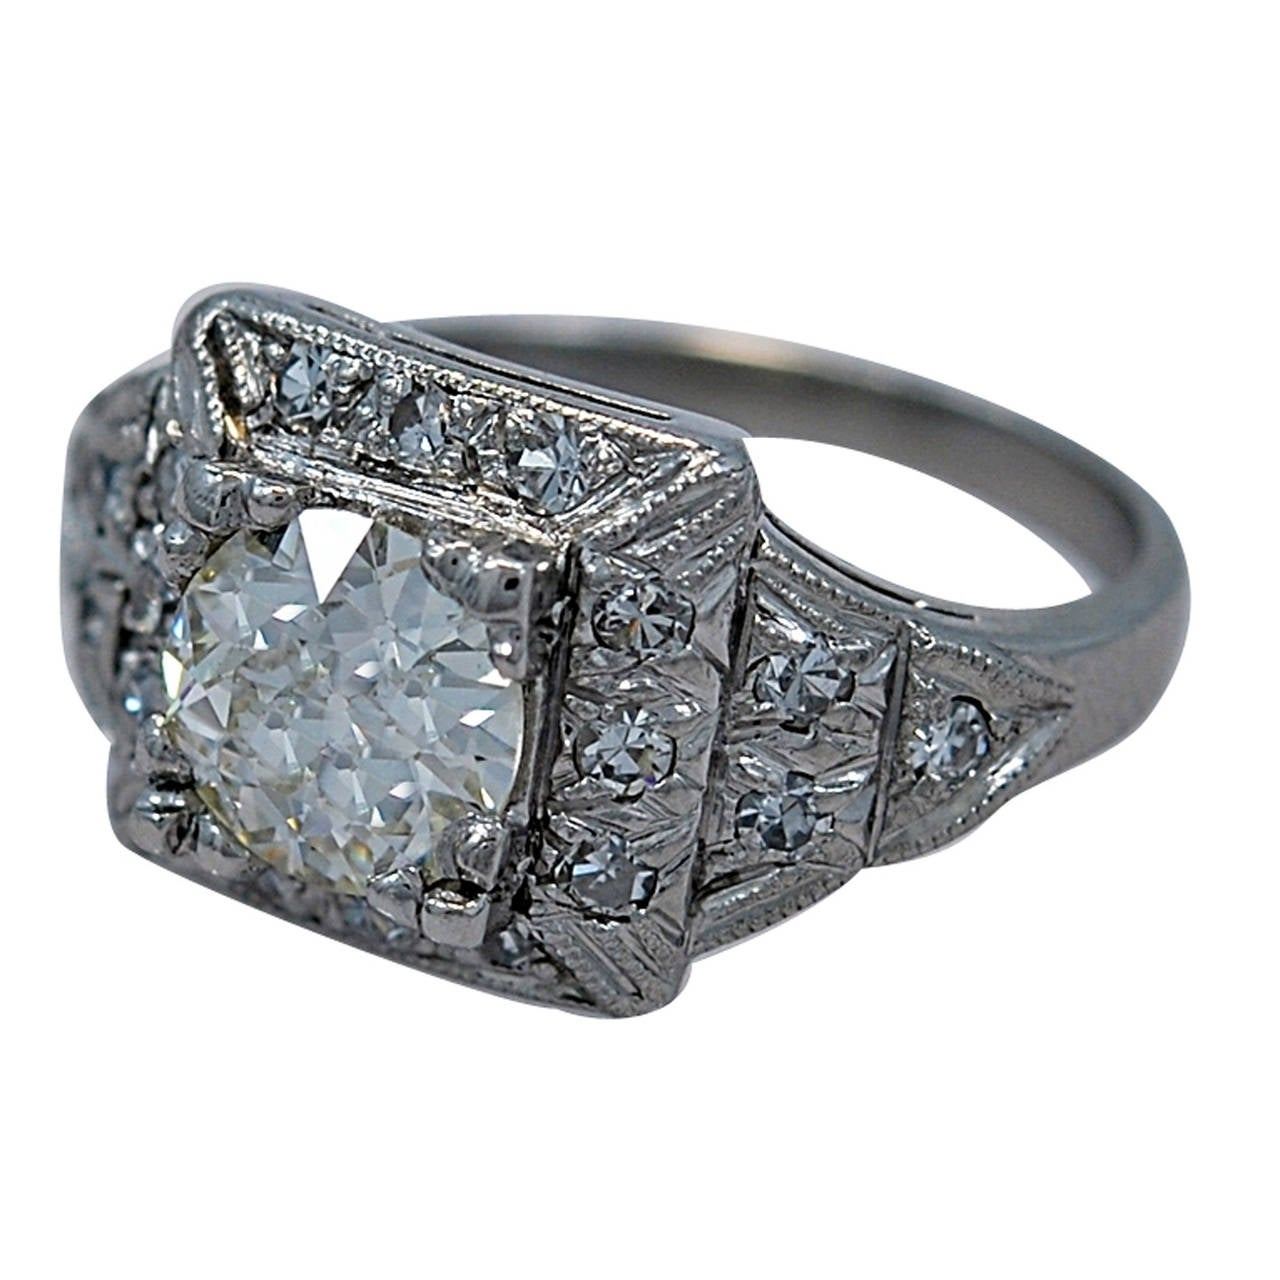 Stunning 1.23ct. Diamond & Platinum Art Deco Engagement Ring